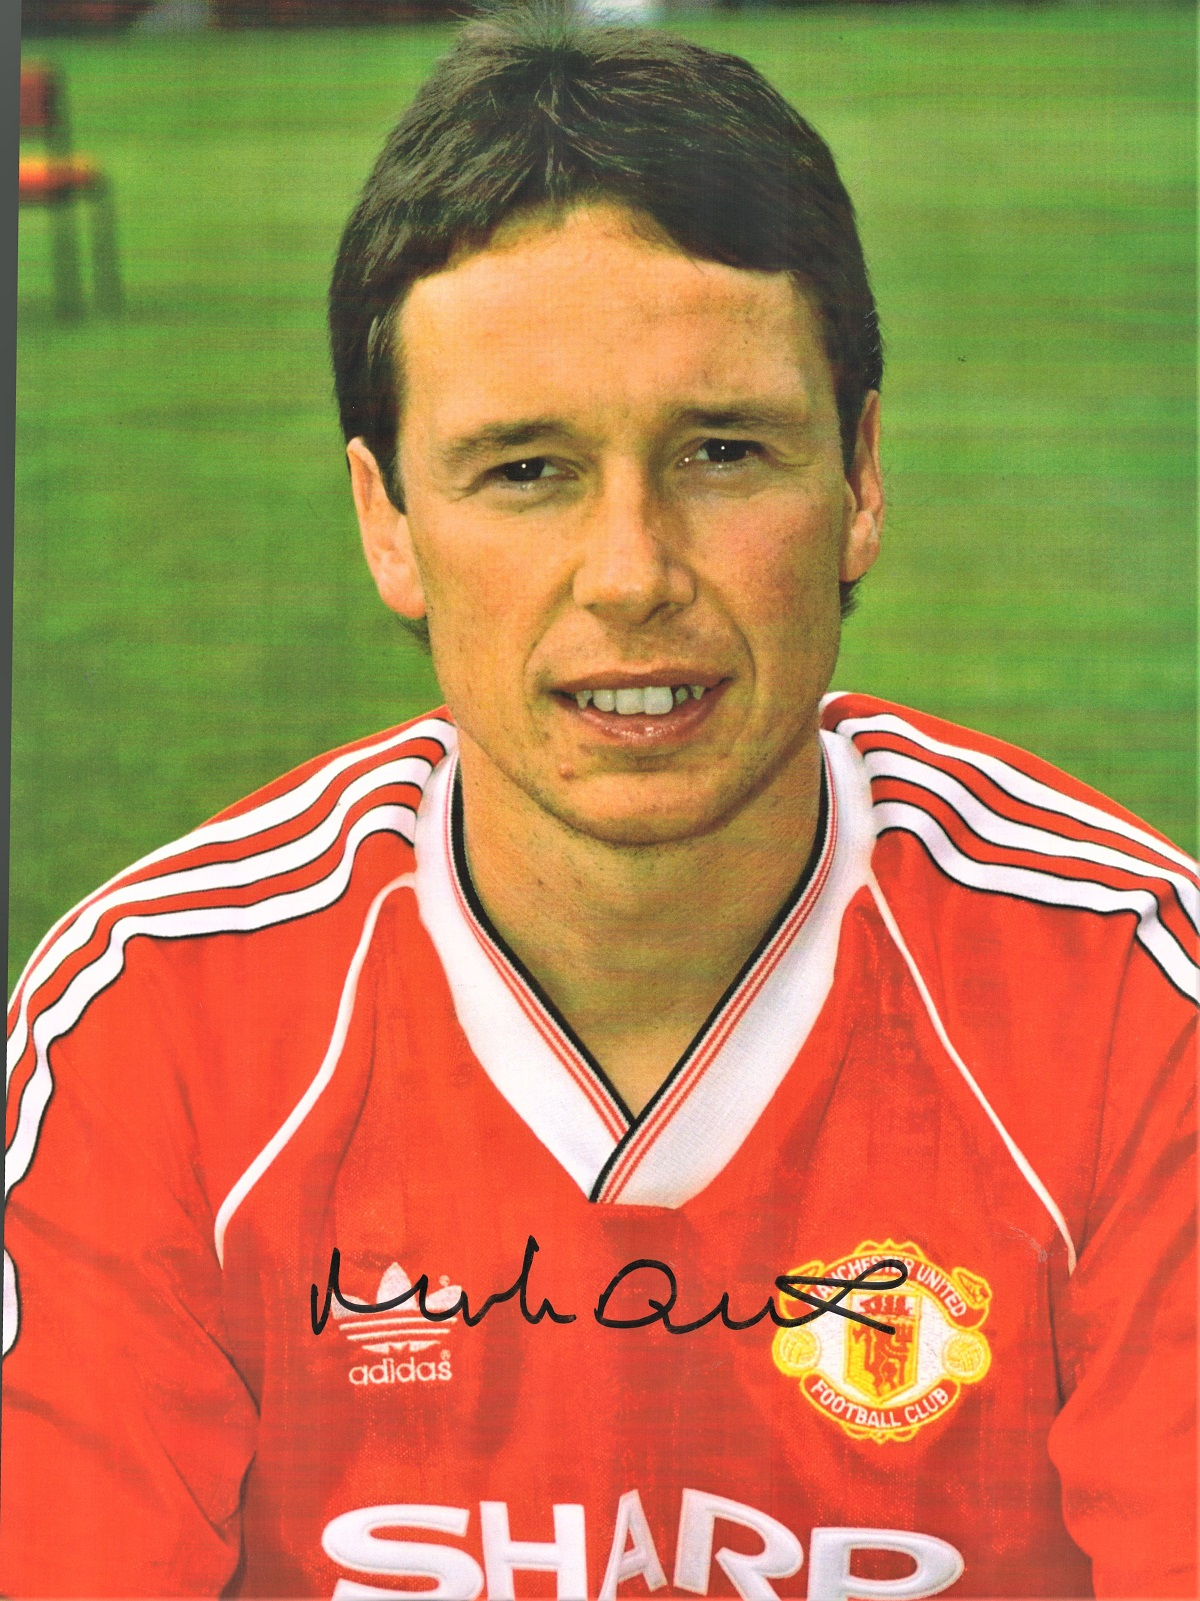 Football Mike Duxbury signed 16x12 colour photo pictured during his time with Manchester United.